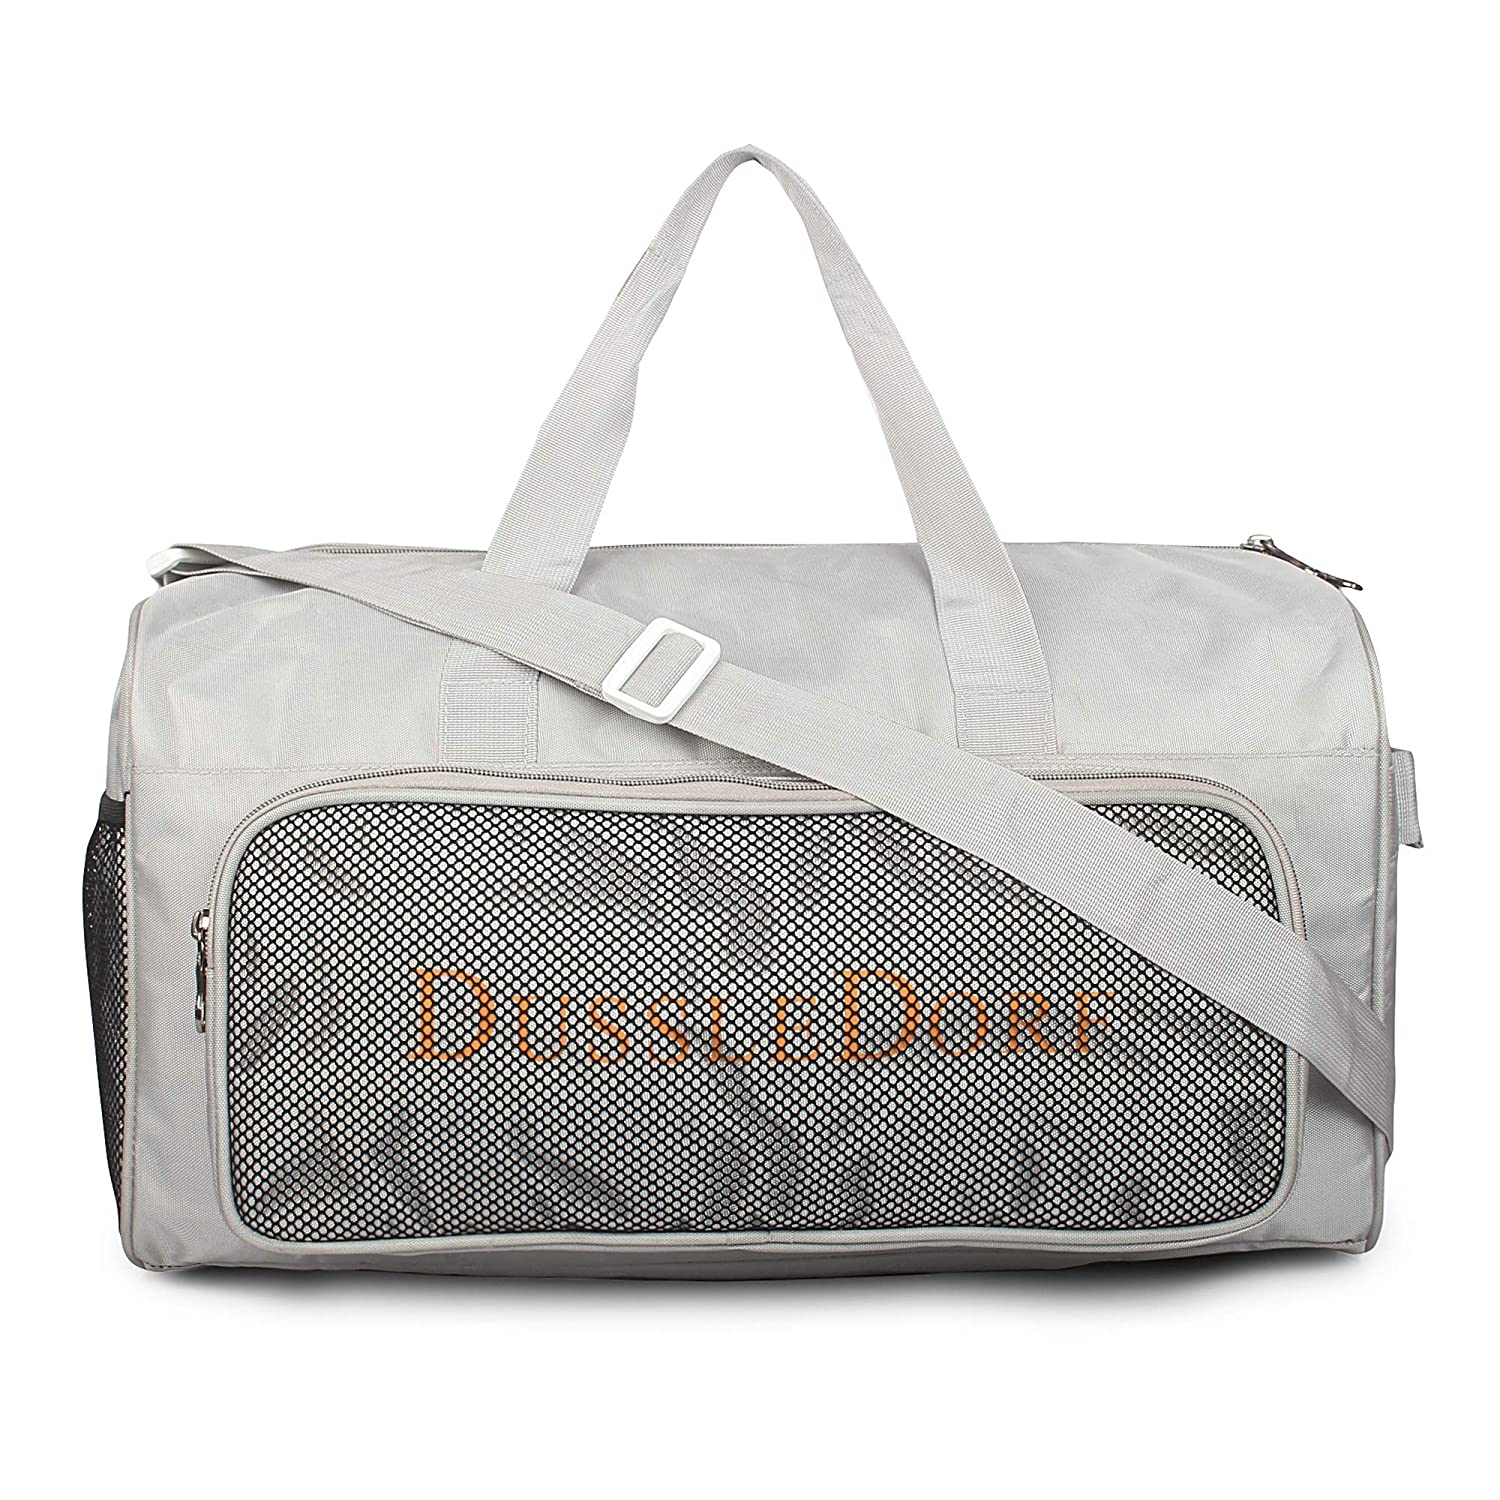 Dussle Dorf Polyester 35 Liters Grey Travel Duffle Bag